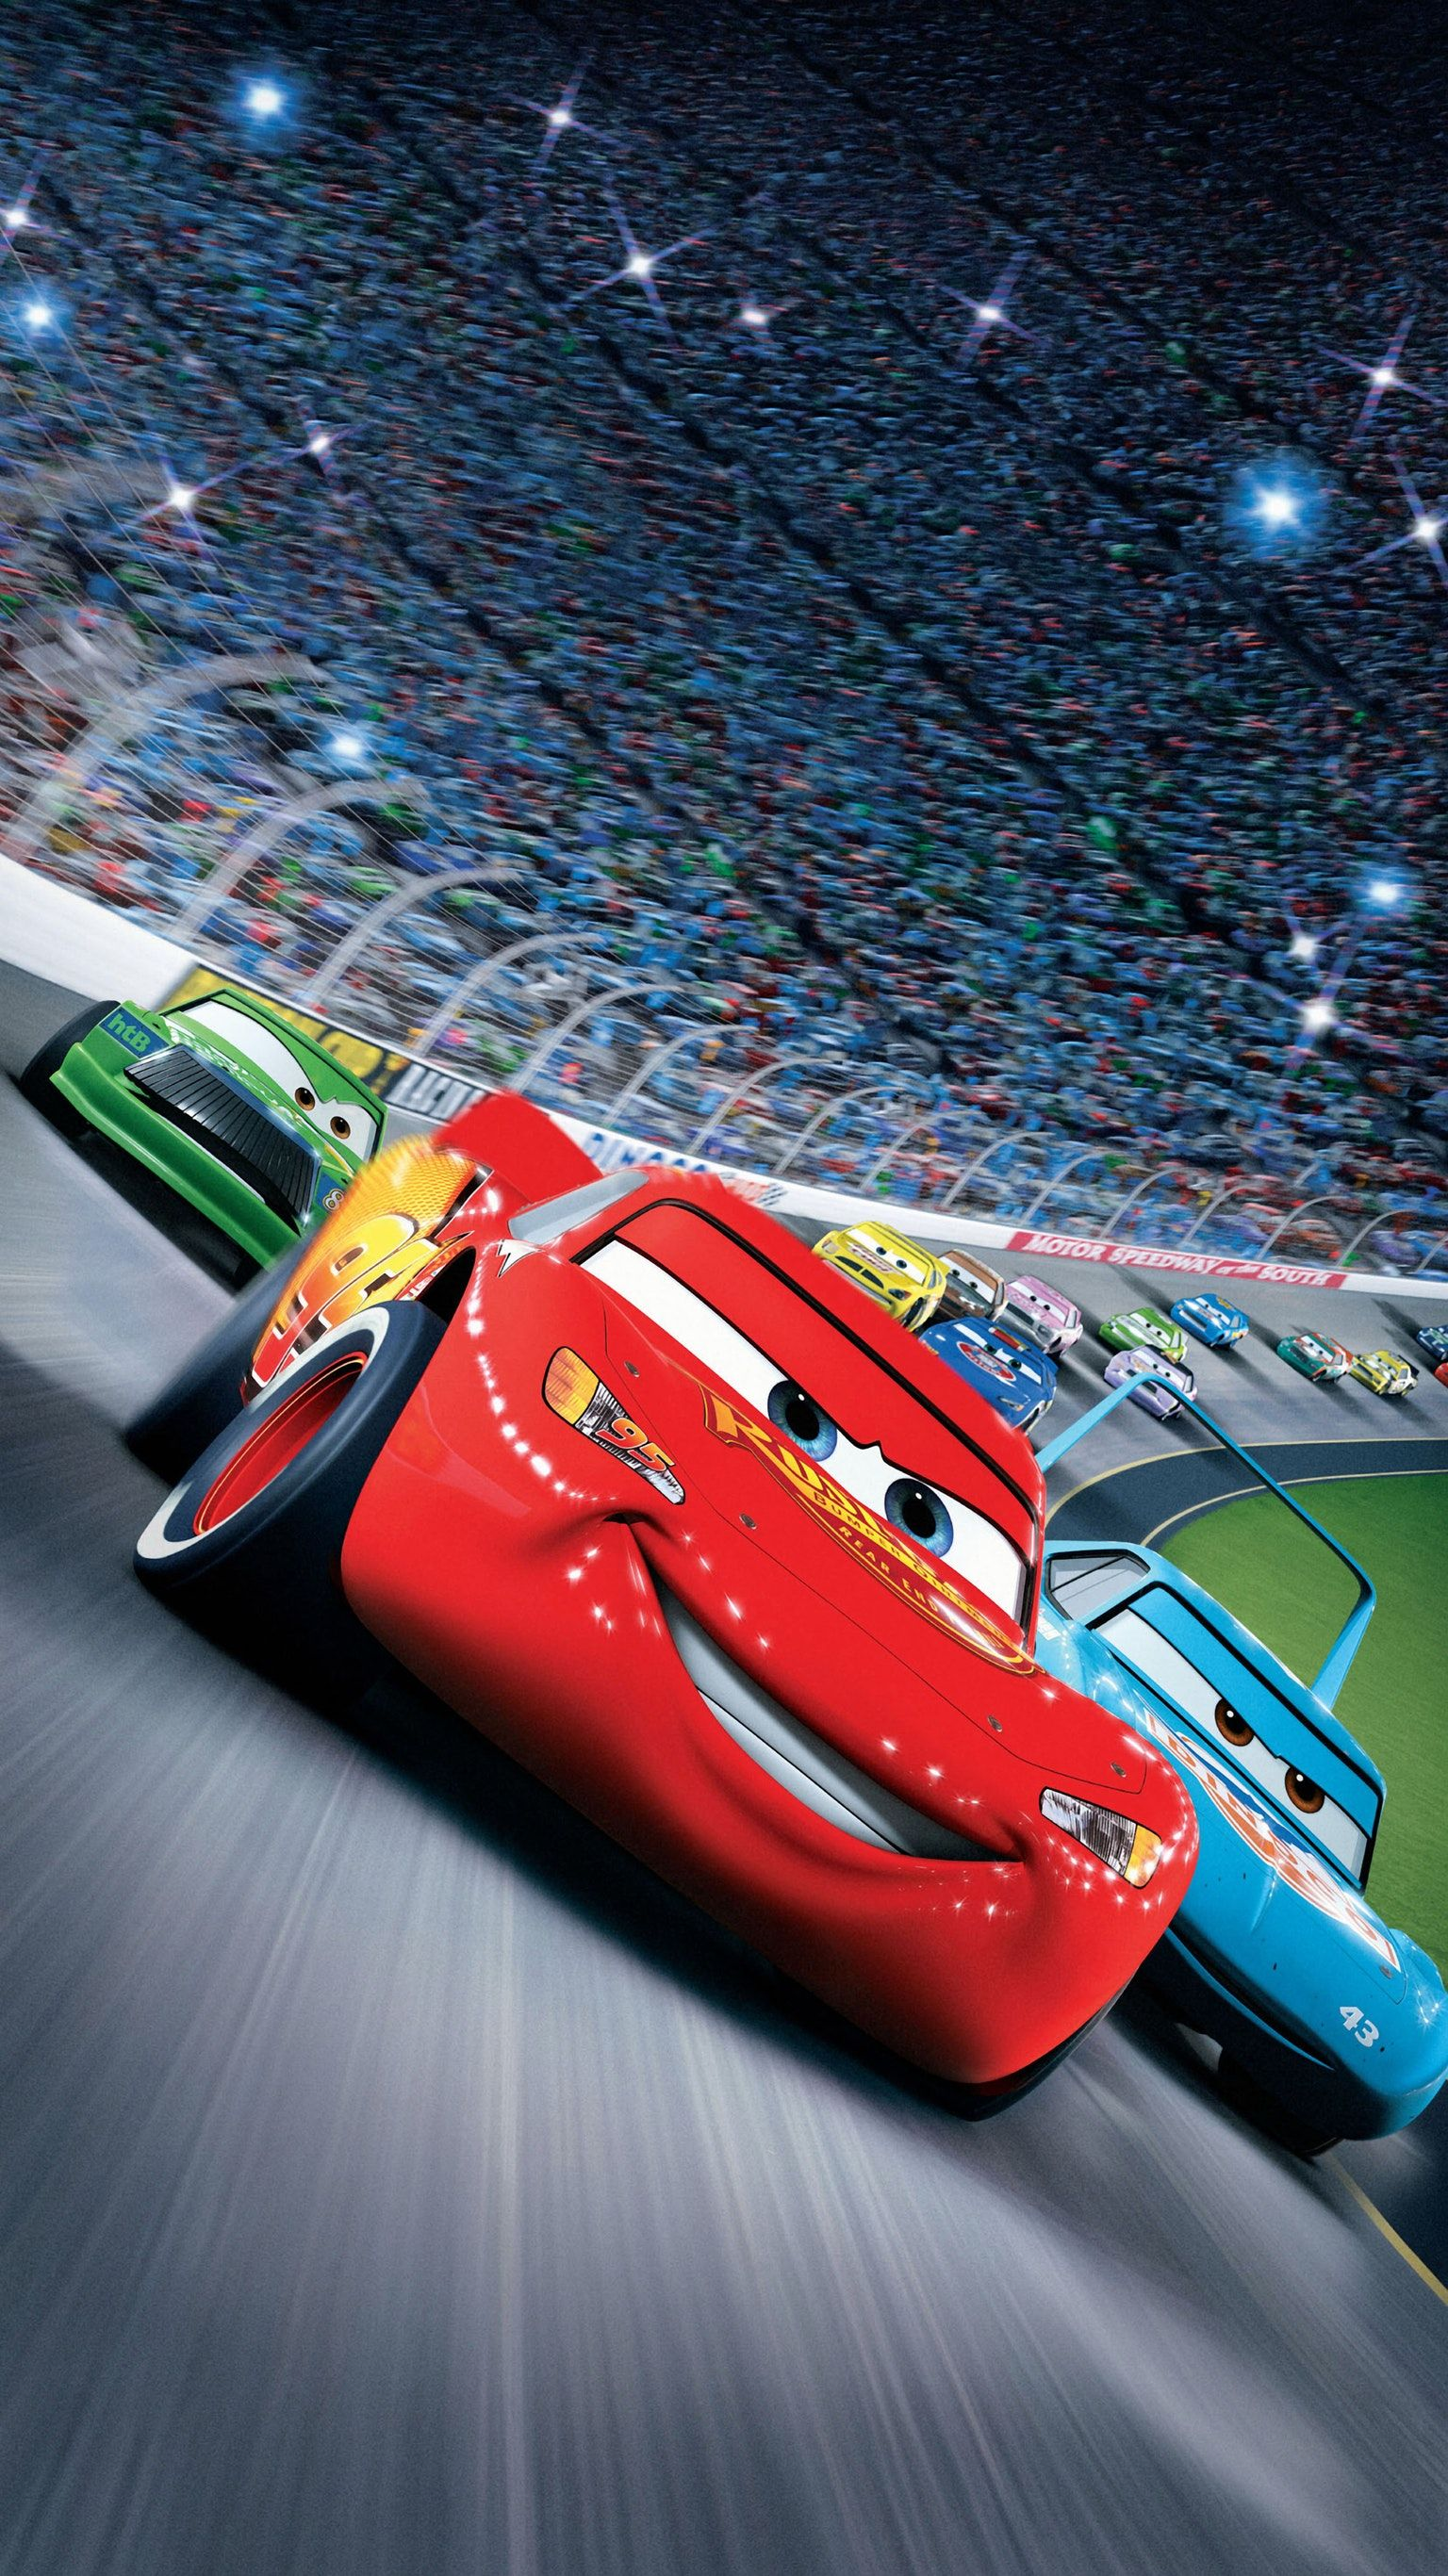 Cars 2006 Phone Wallpaper Moviemania Disney Cars Movie